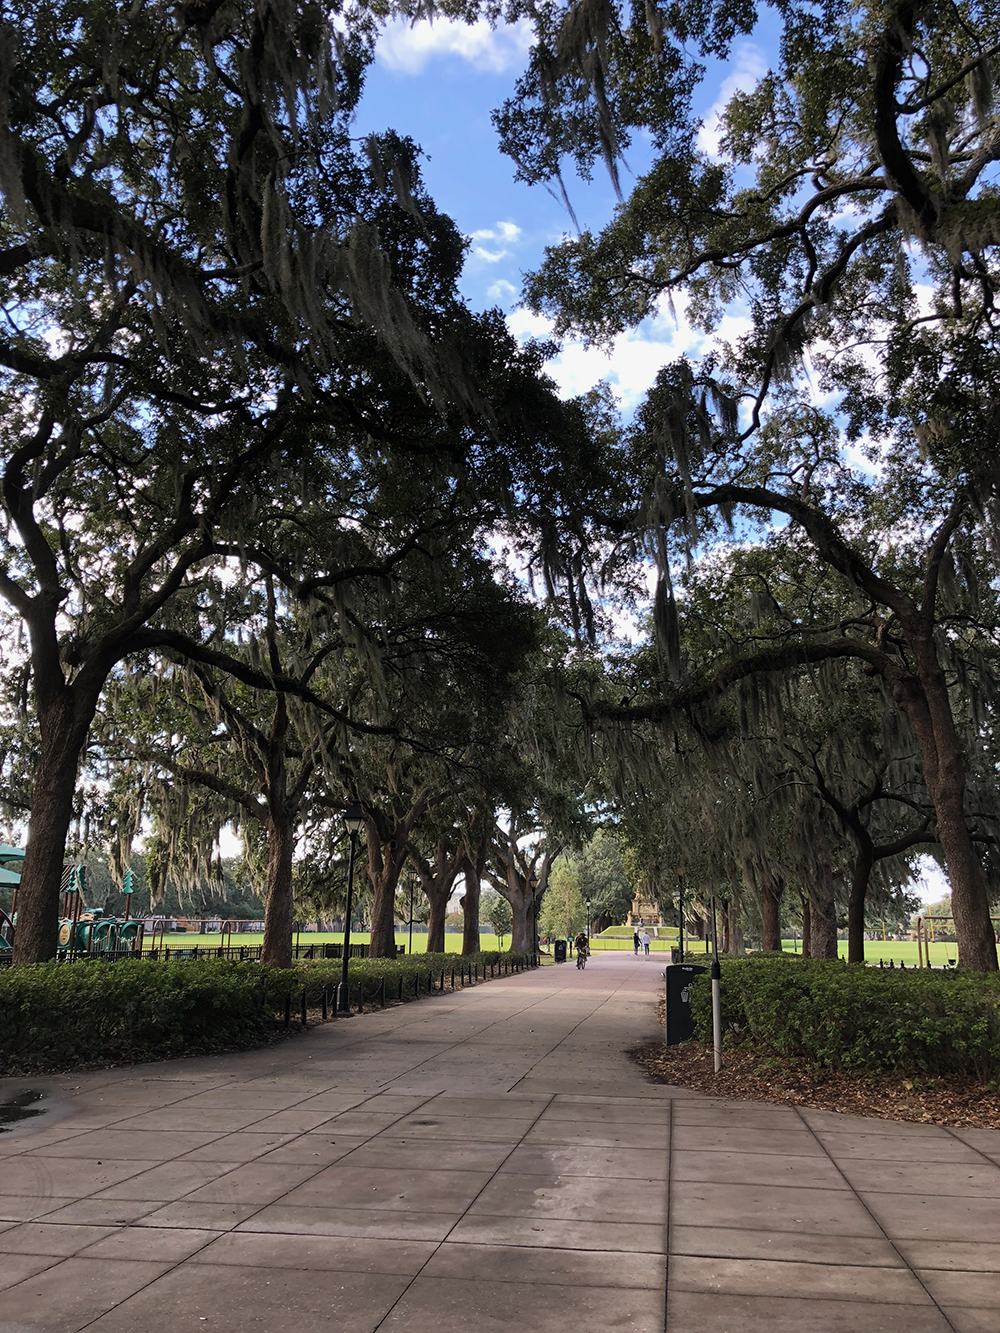 Strolling through Forsyth Park